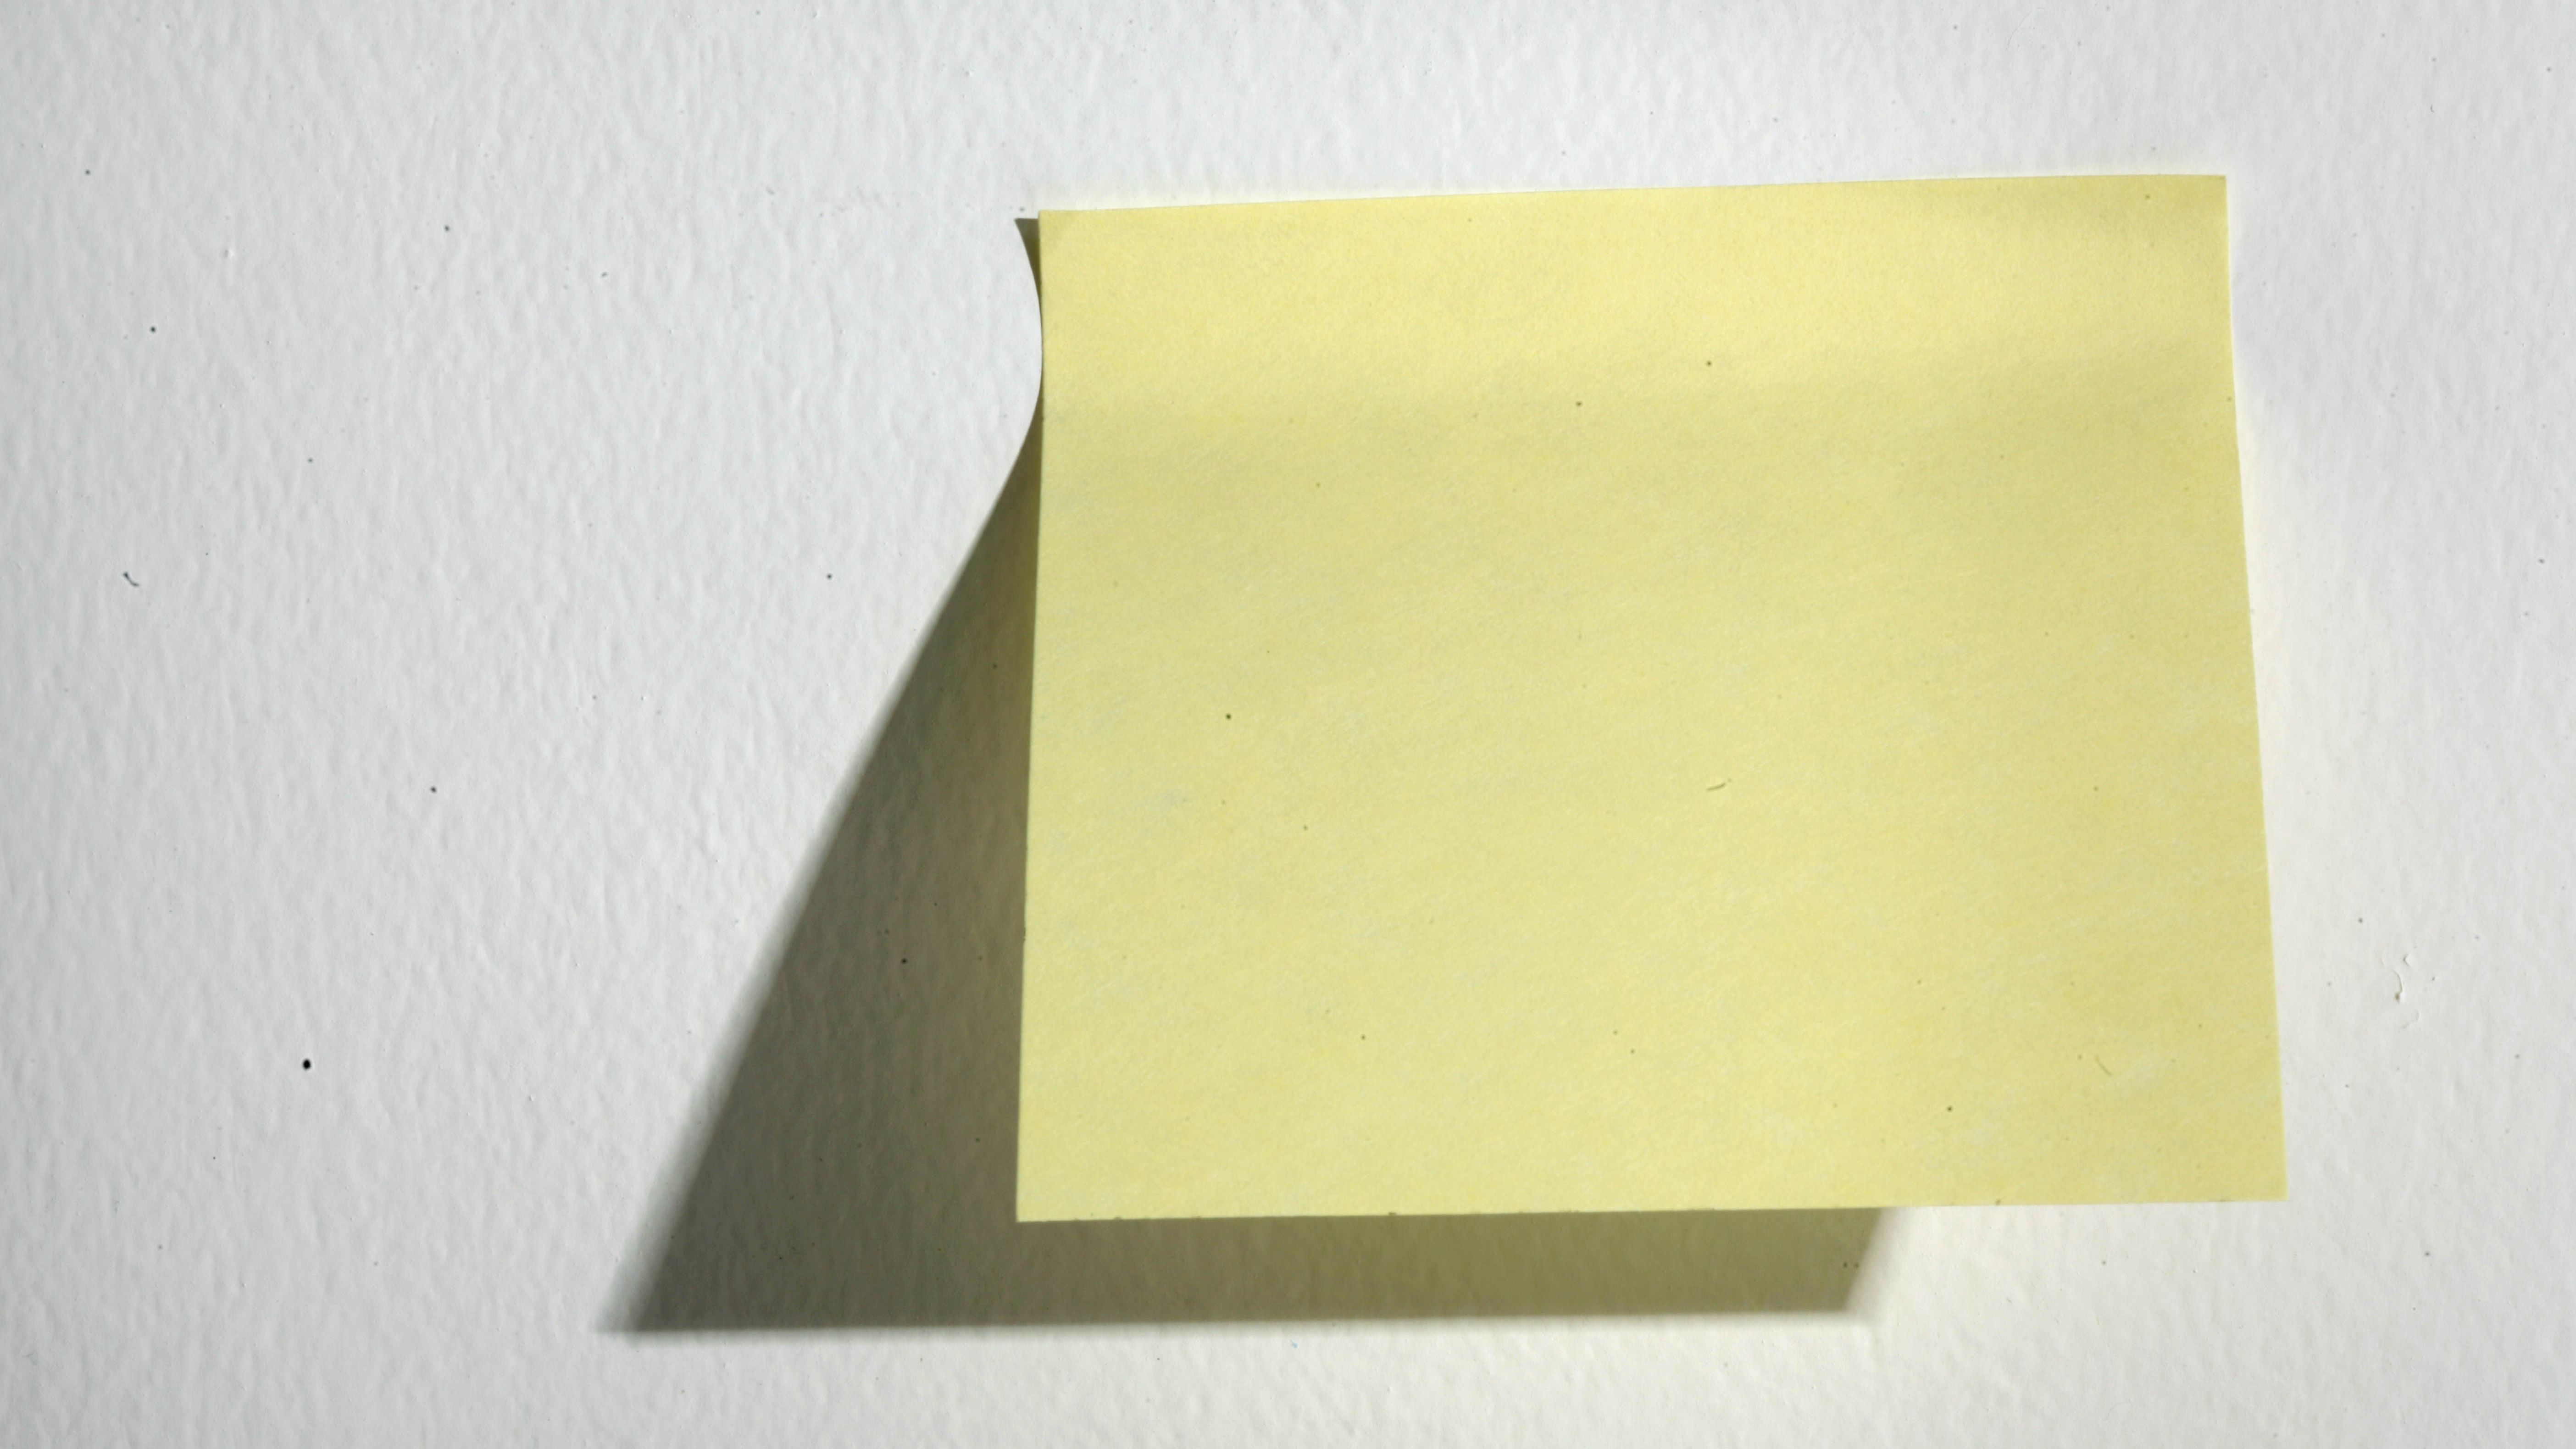 Sticky post-it note